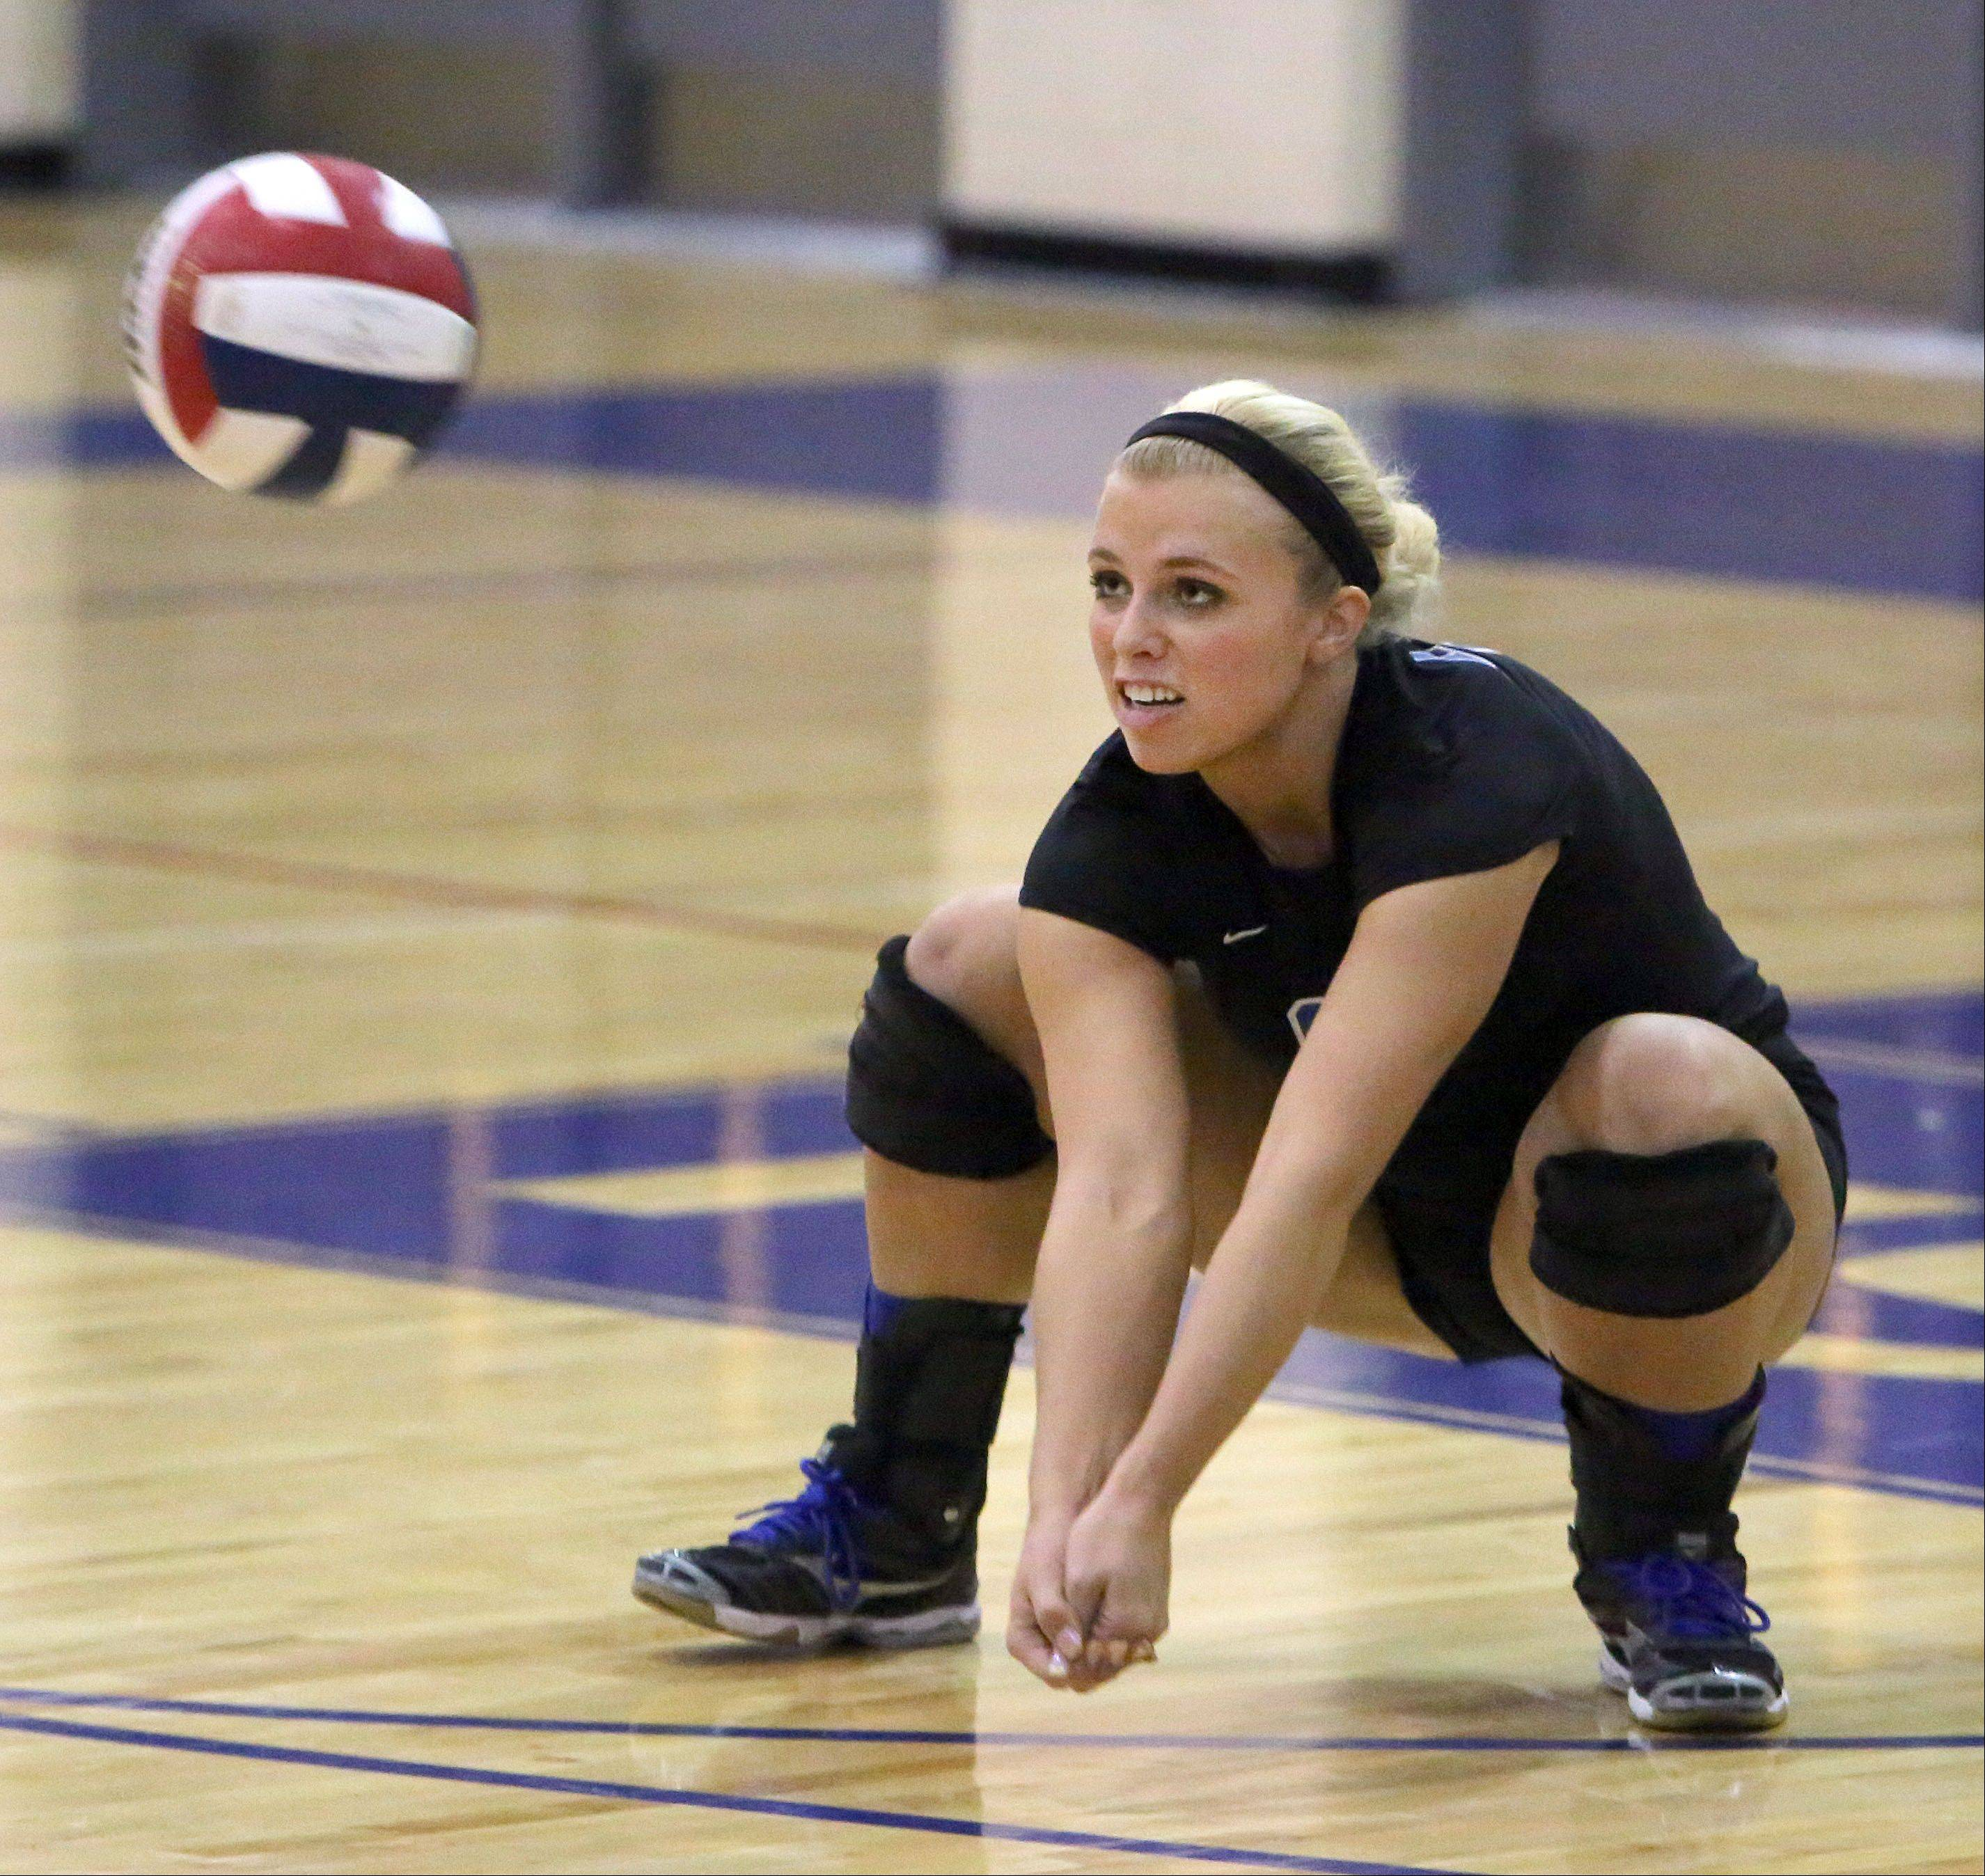 Lakes' Lisa Buehler digs out a serve during the NSC title game against Lake Zurich Wednesday night at Lakes High School.